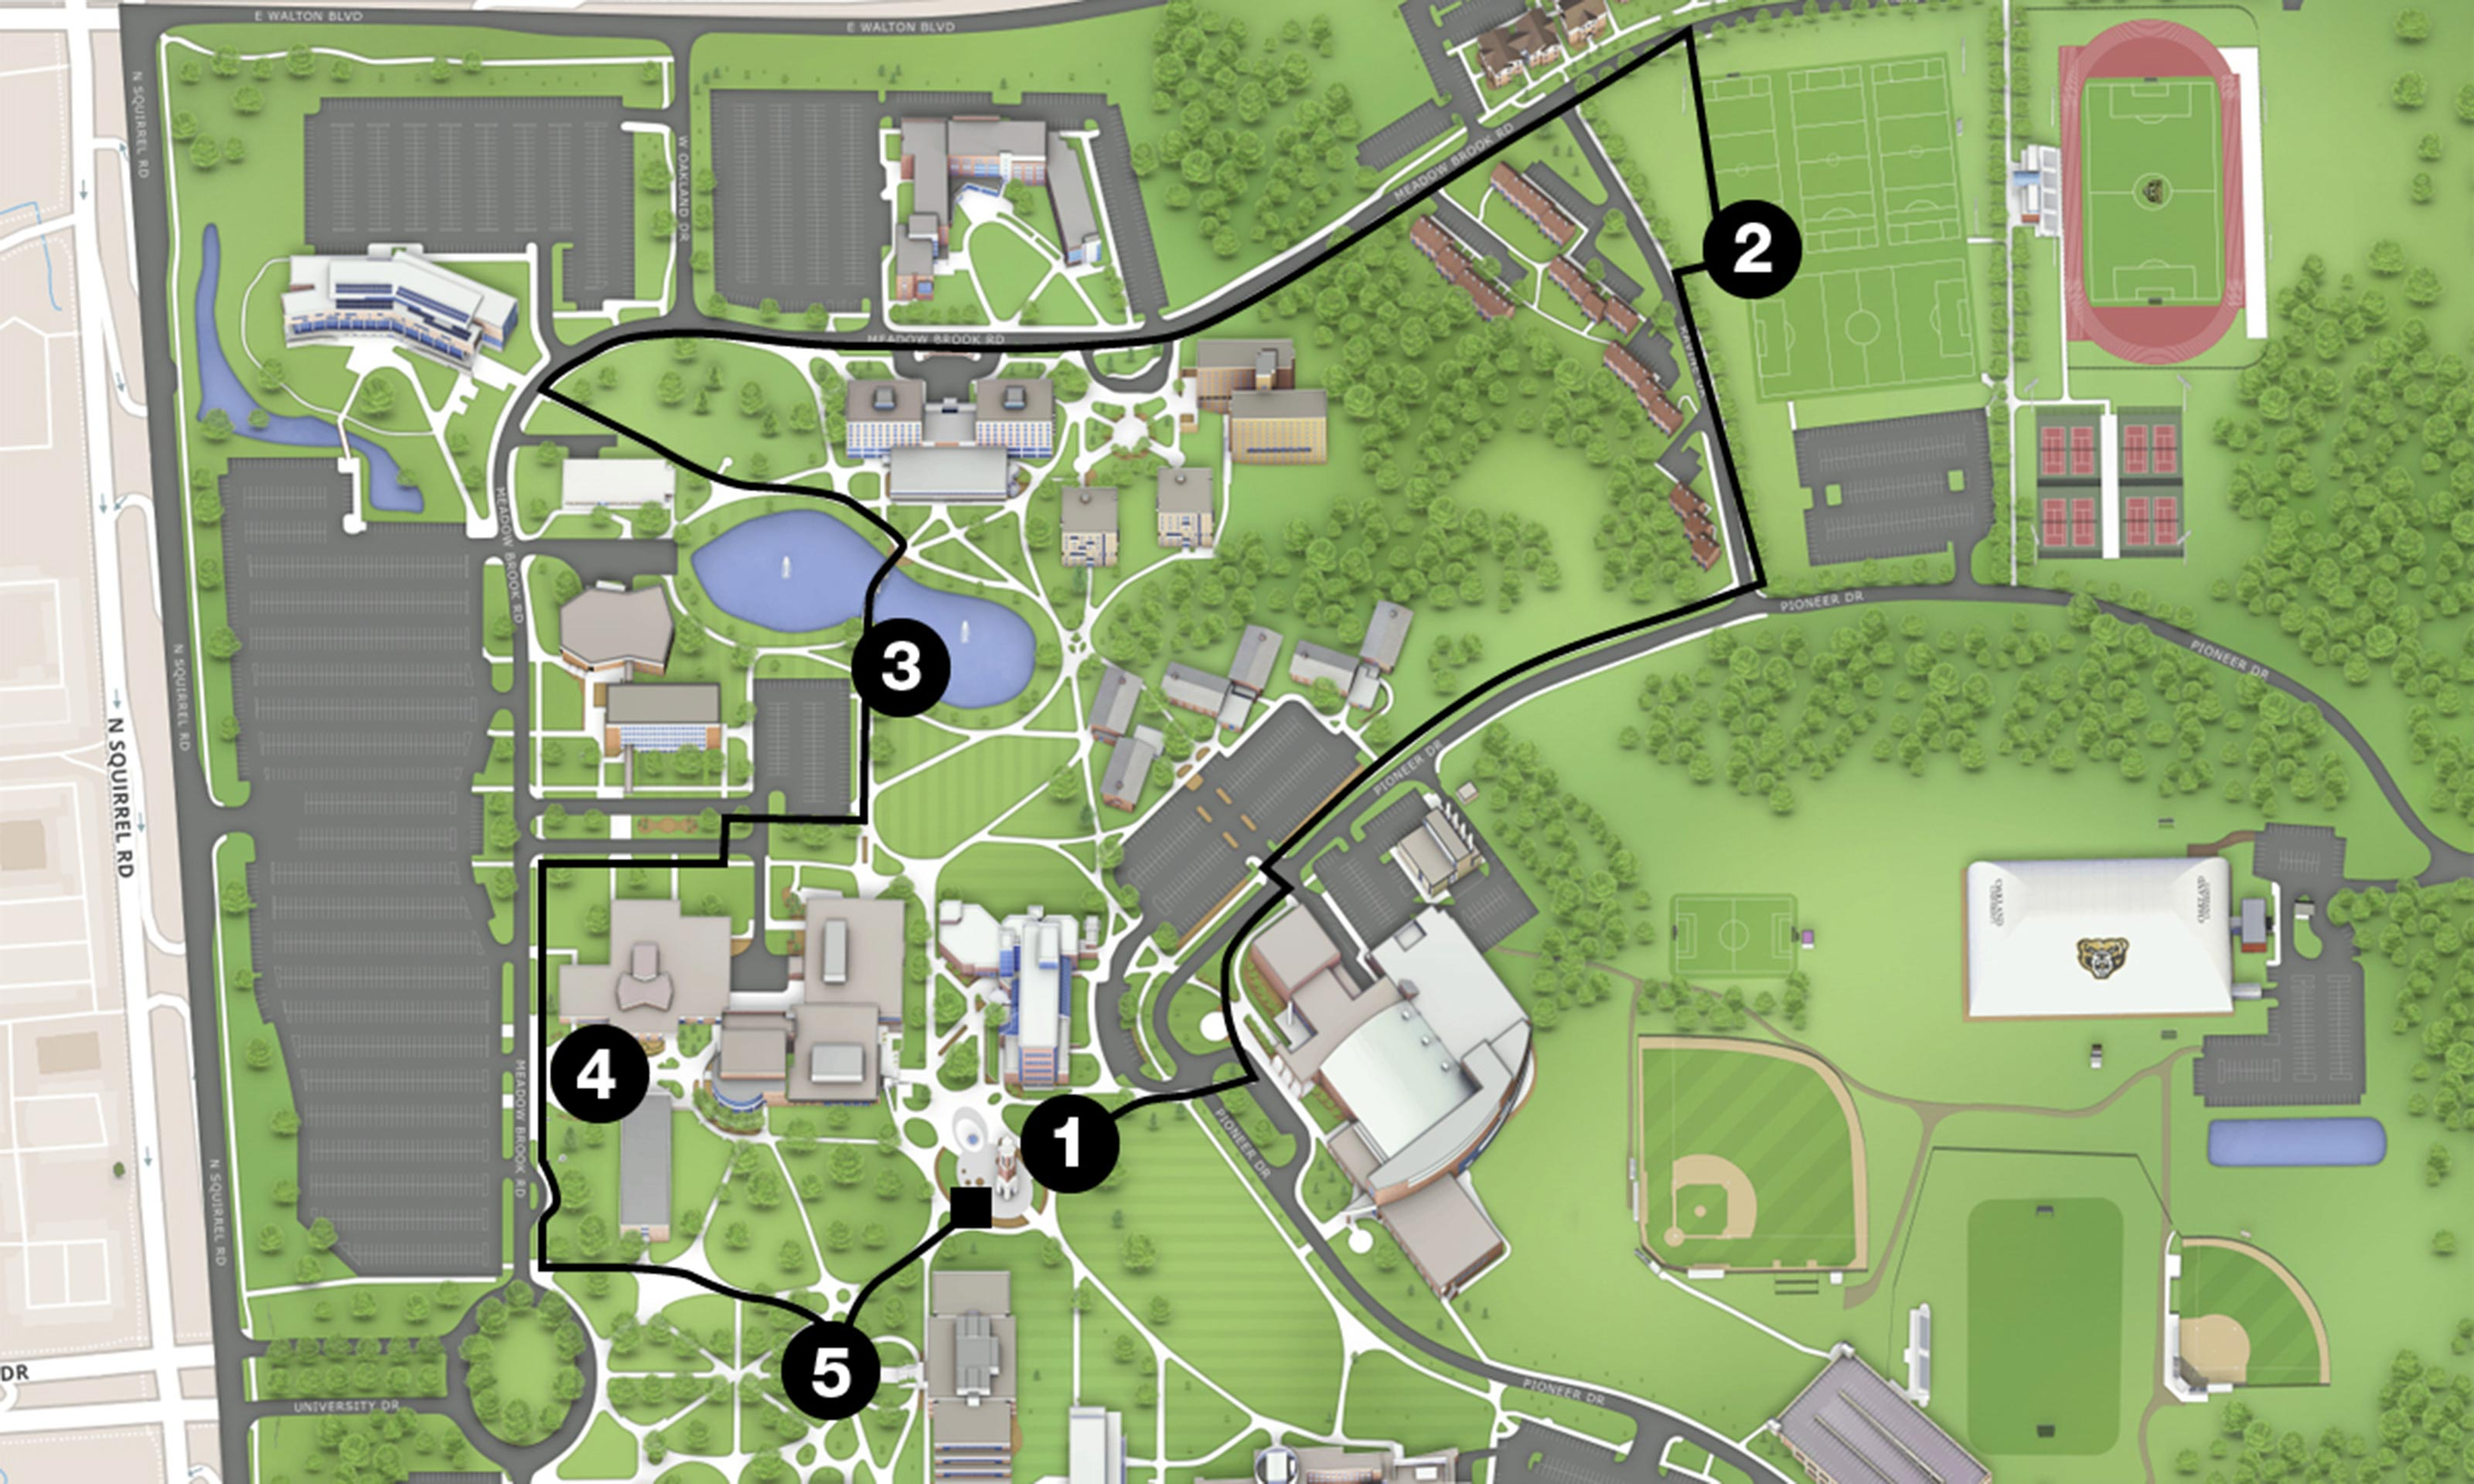 grizz grind  around campus  summer   ou magazine  oakland  - k course route at oakland university in rochester hills